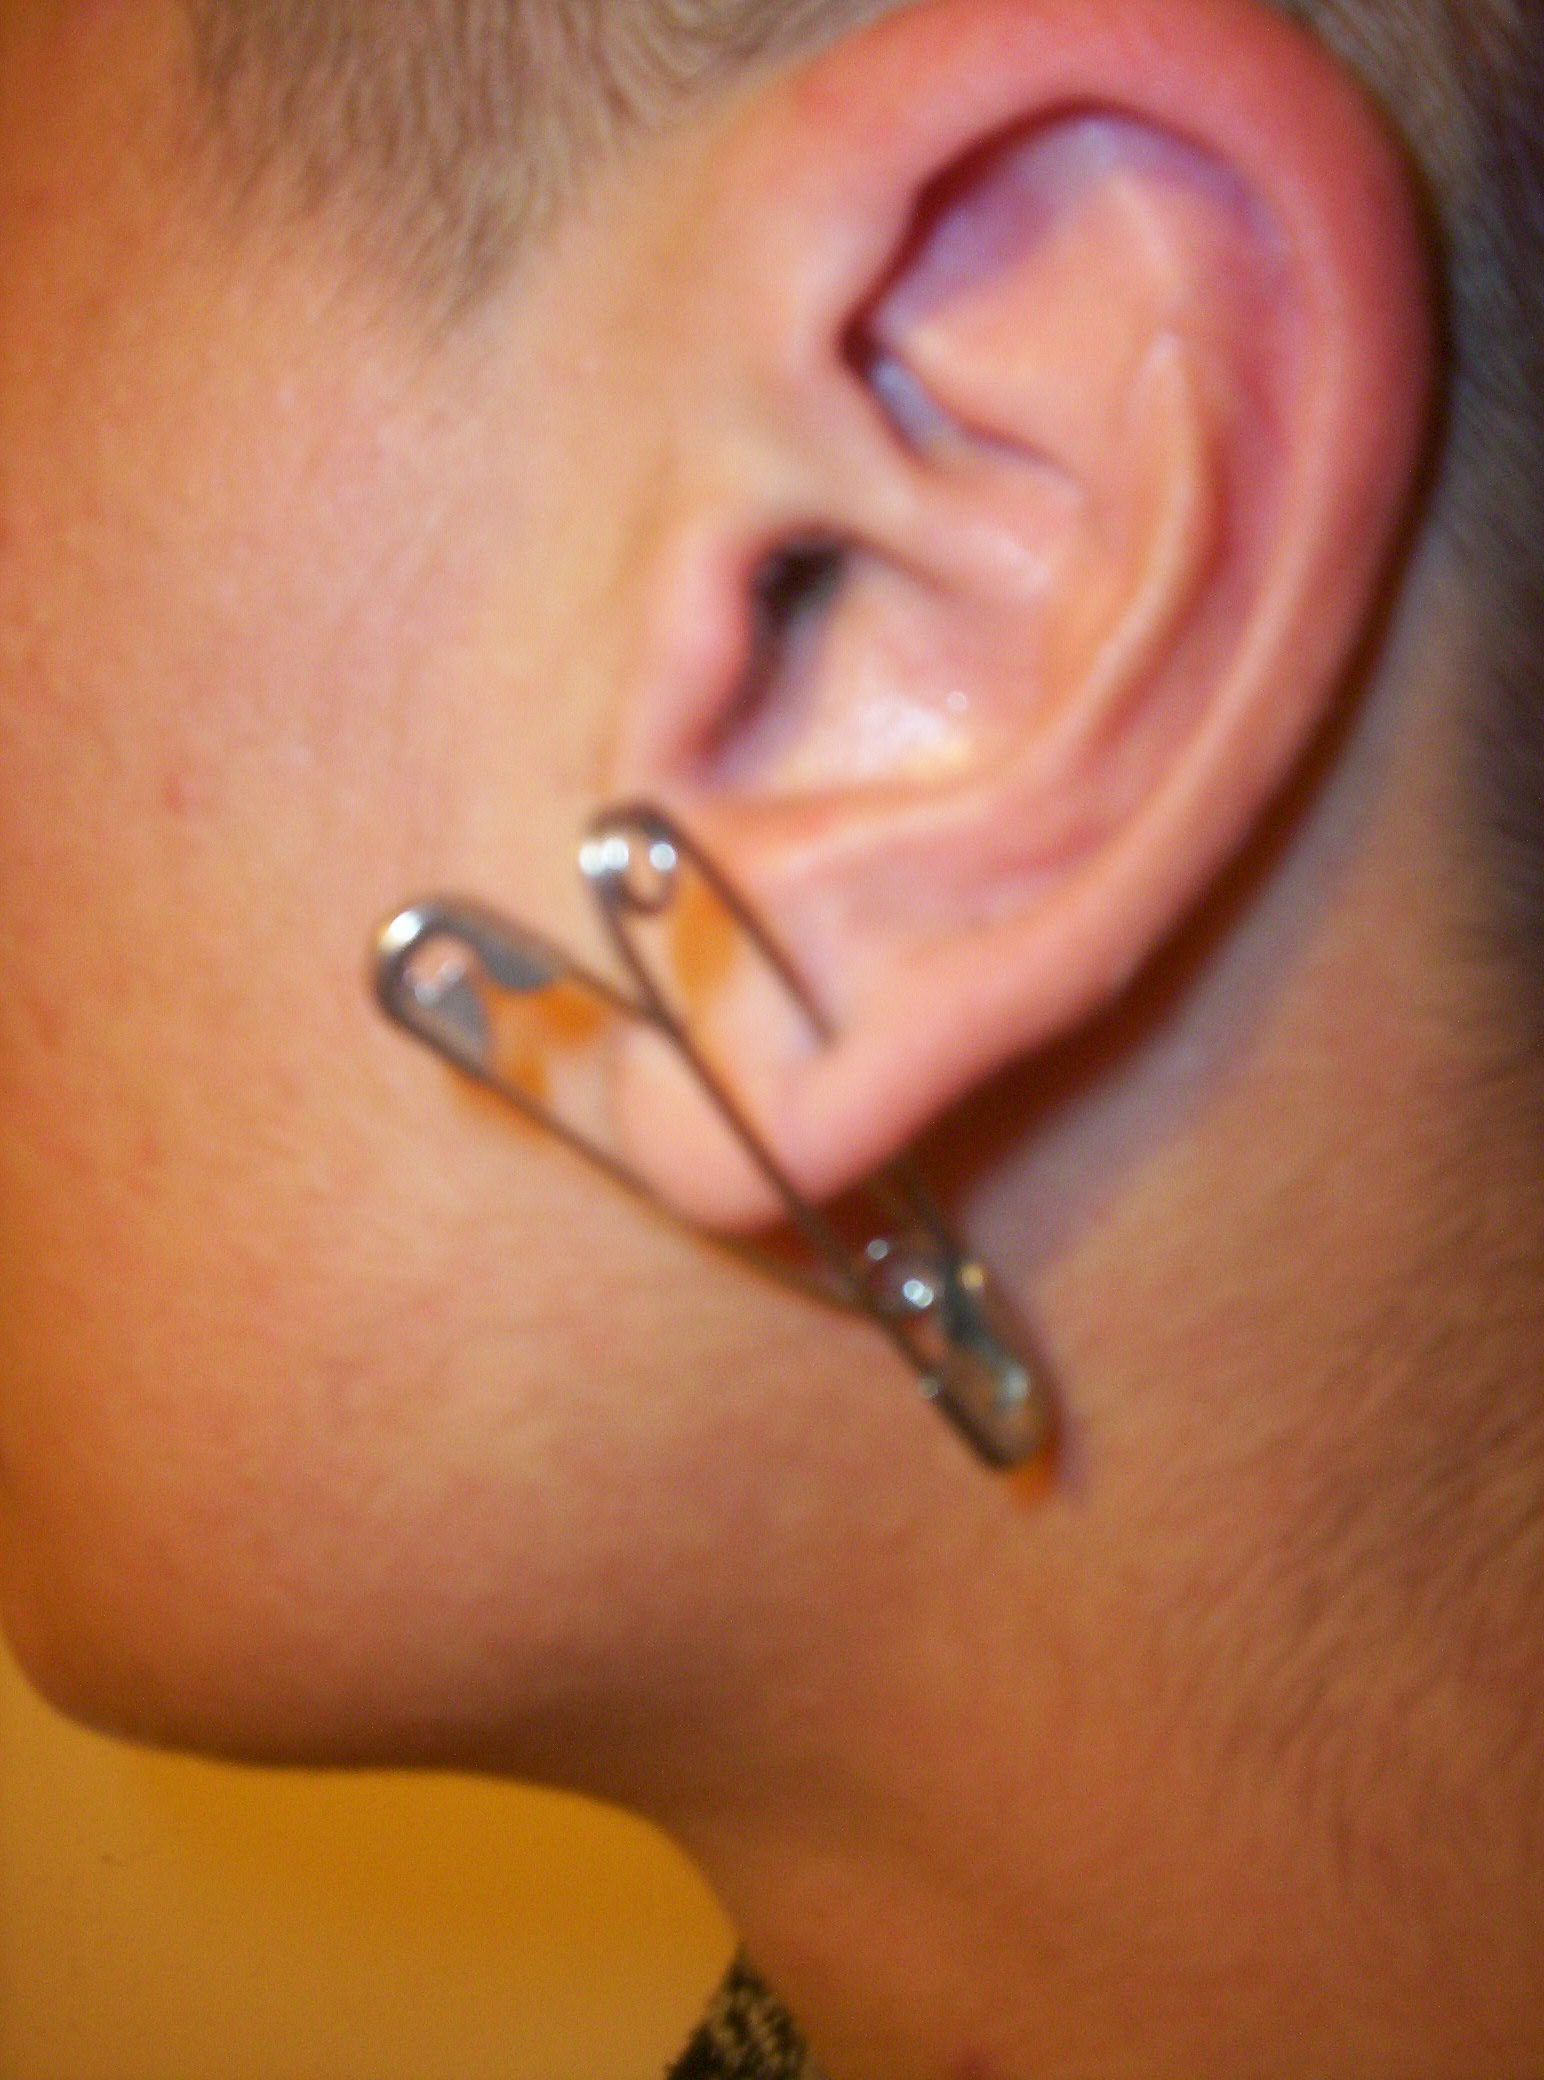 external image Ear-safetypin.jpg